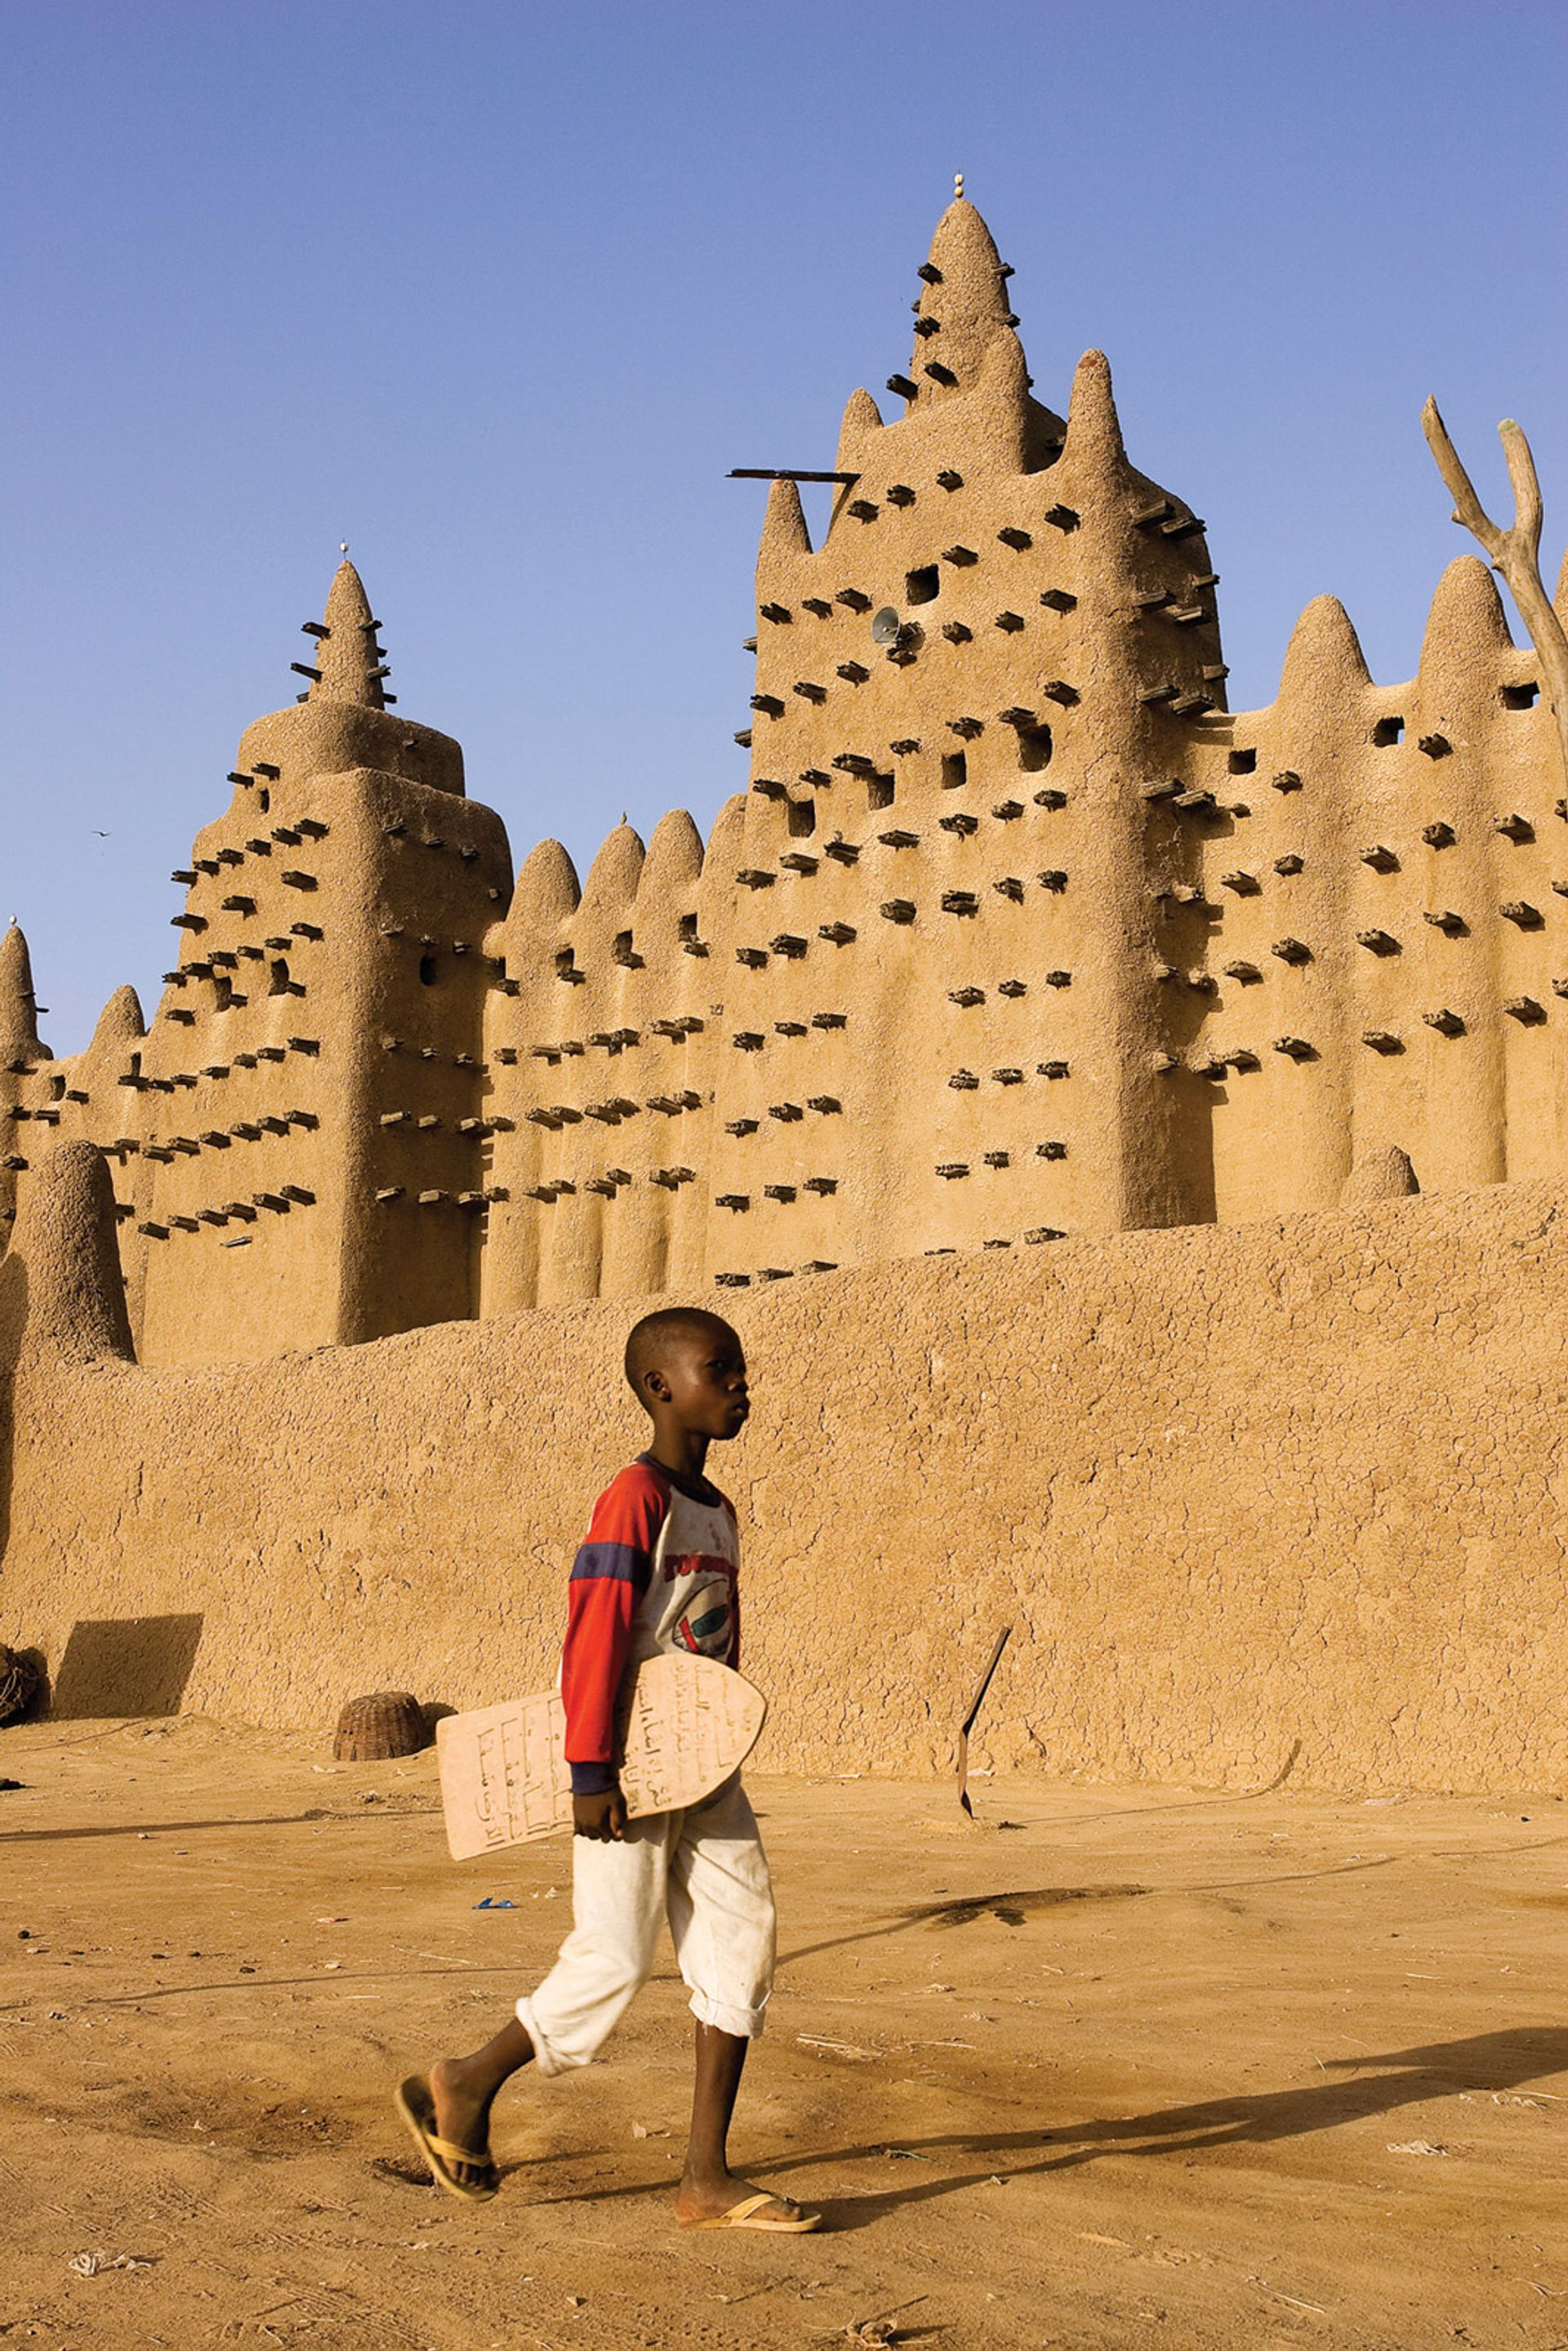 A boy carrying a lawh (wooden board on which he has written Qur'anic verses) walks past the Grand Mosque of Mopti, Mali Hemis/Alamy Stock Photo